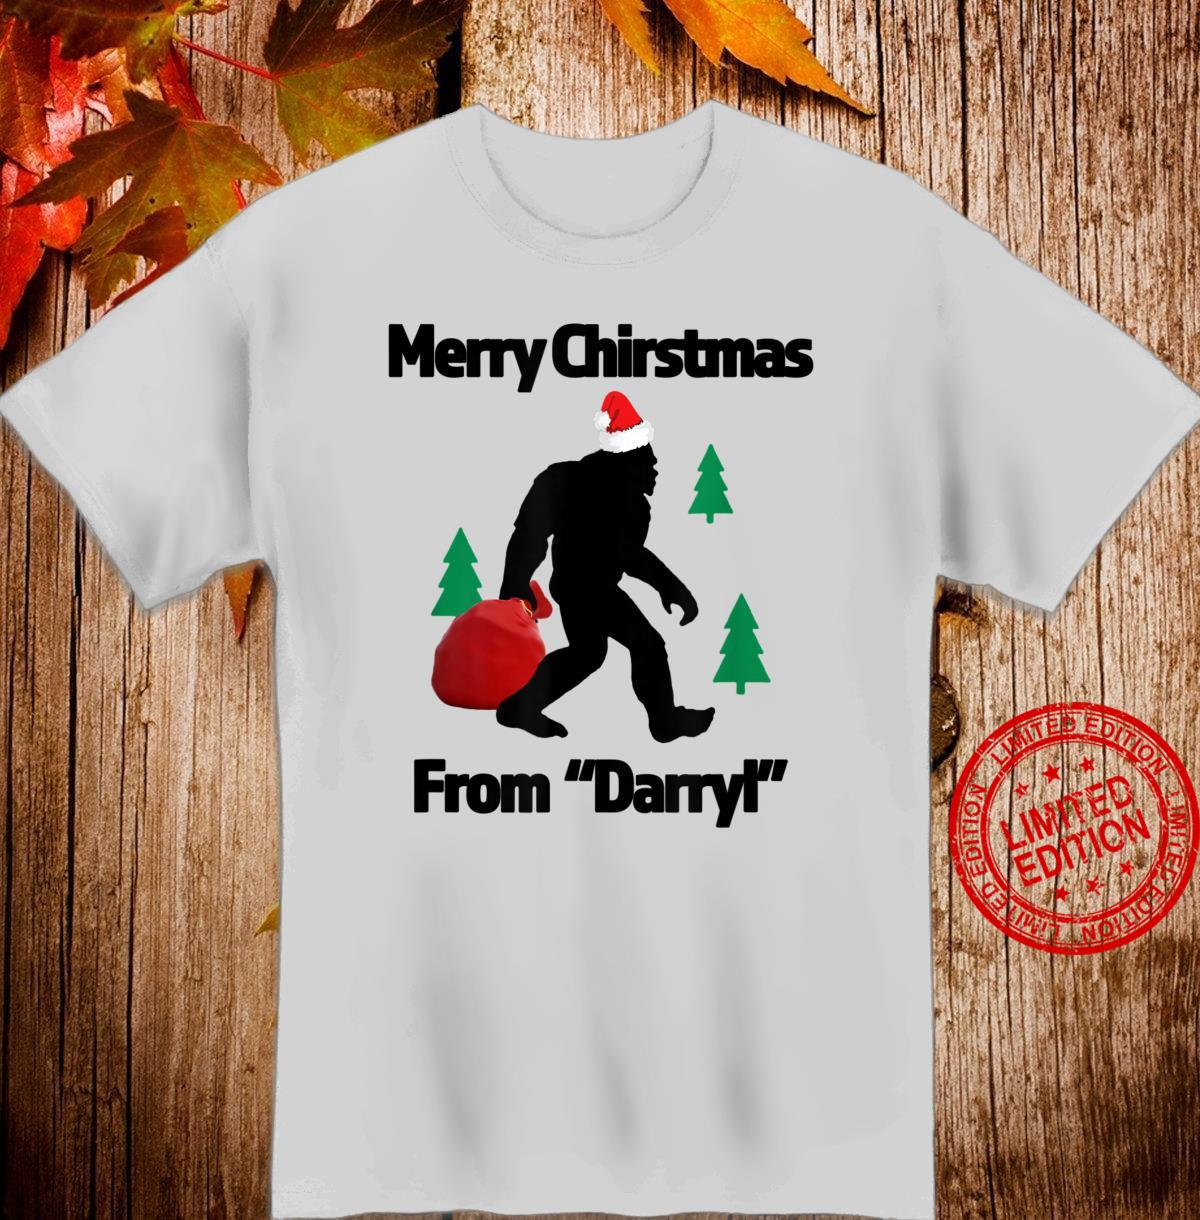 Merry Chiristmas From Darryl Great Christmas for the Shirt